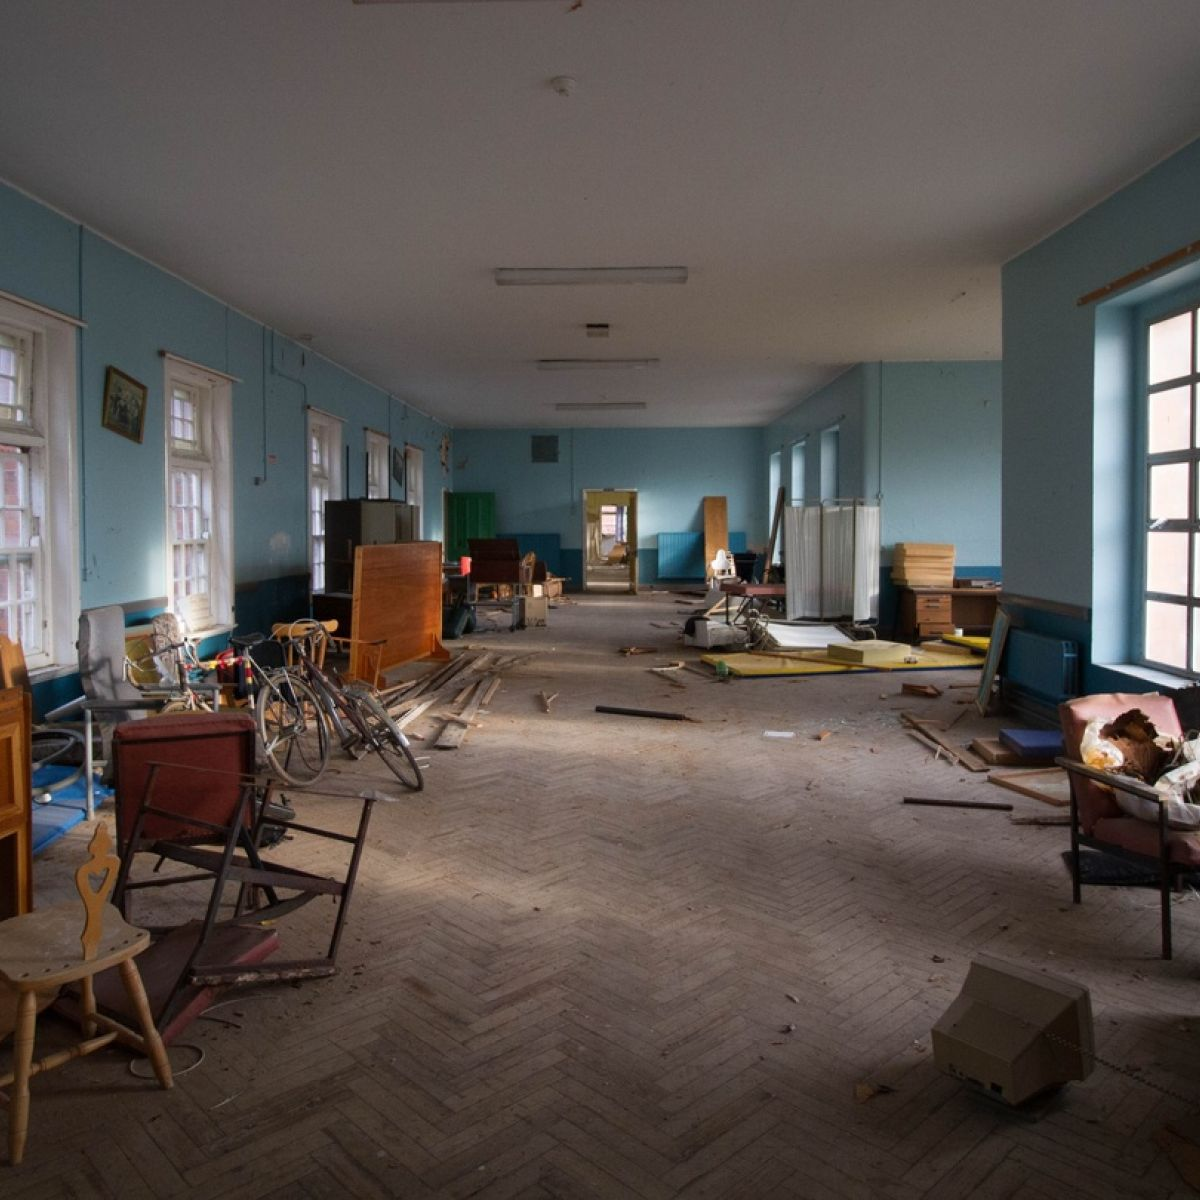 Hidden Stories Of Abandoned Mental Hospital Revealed